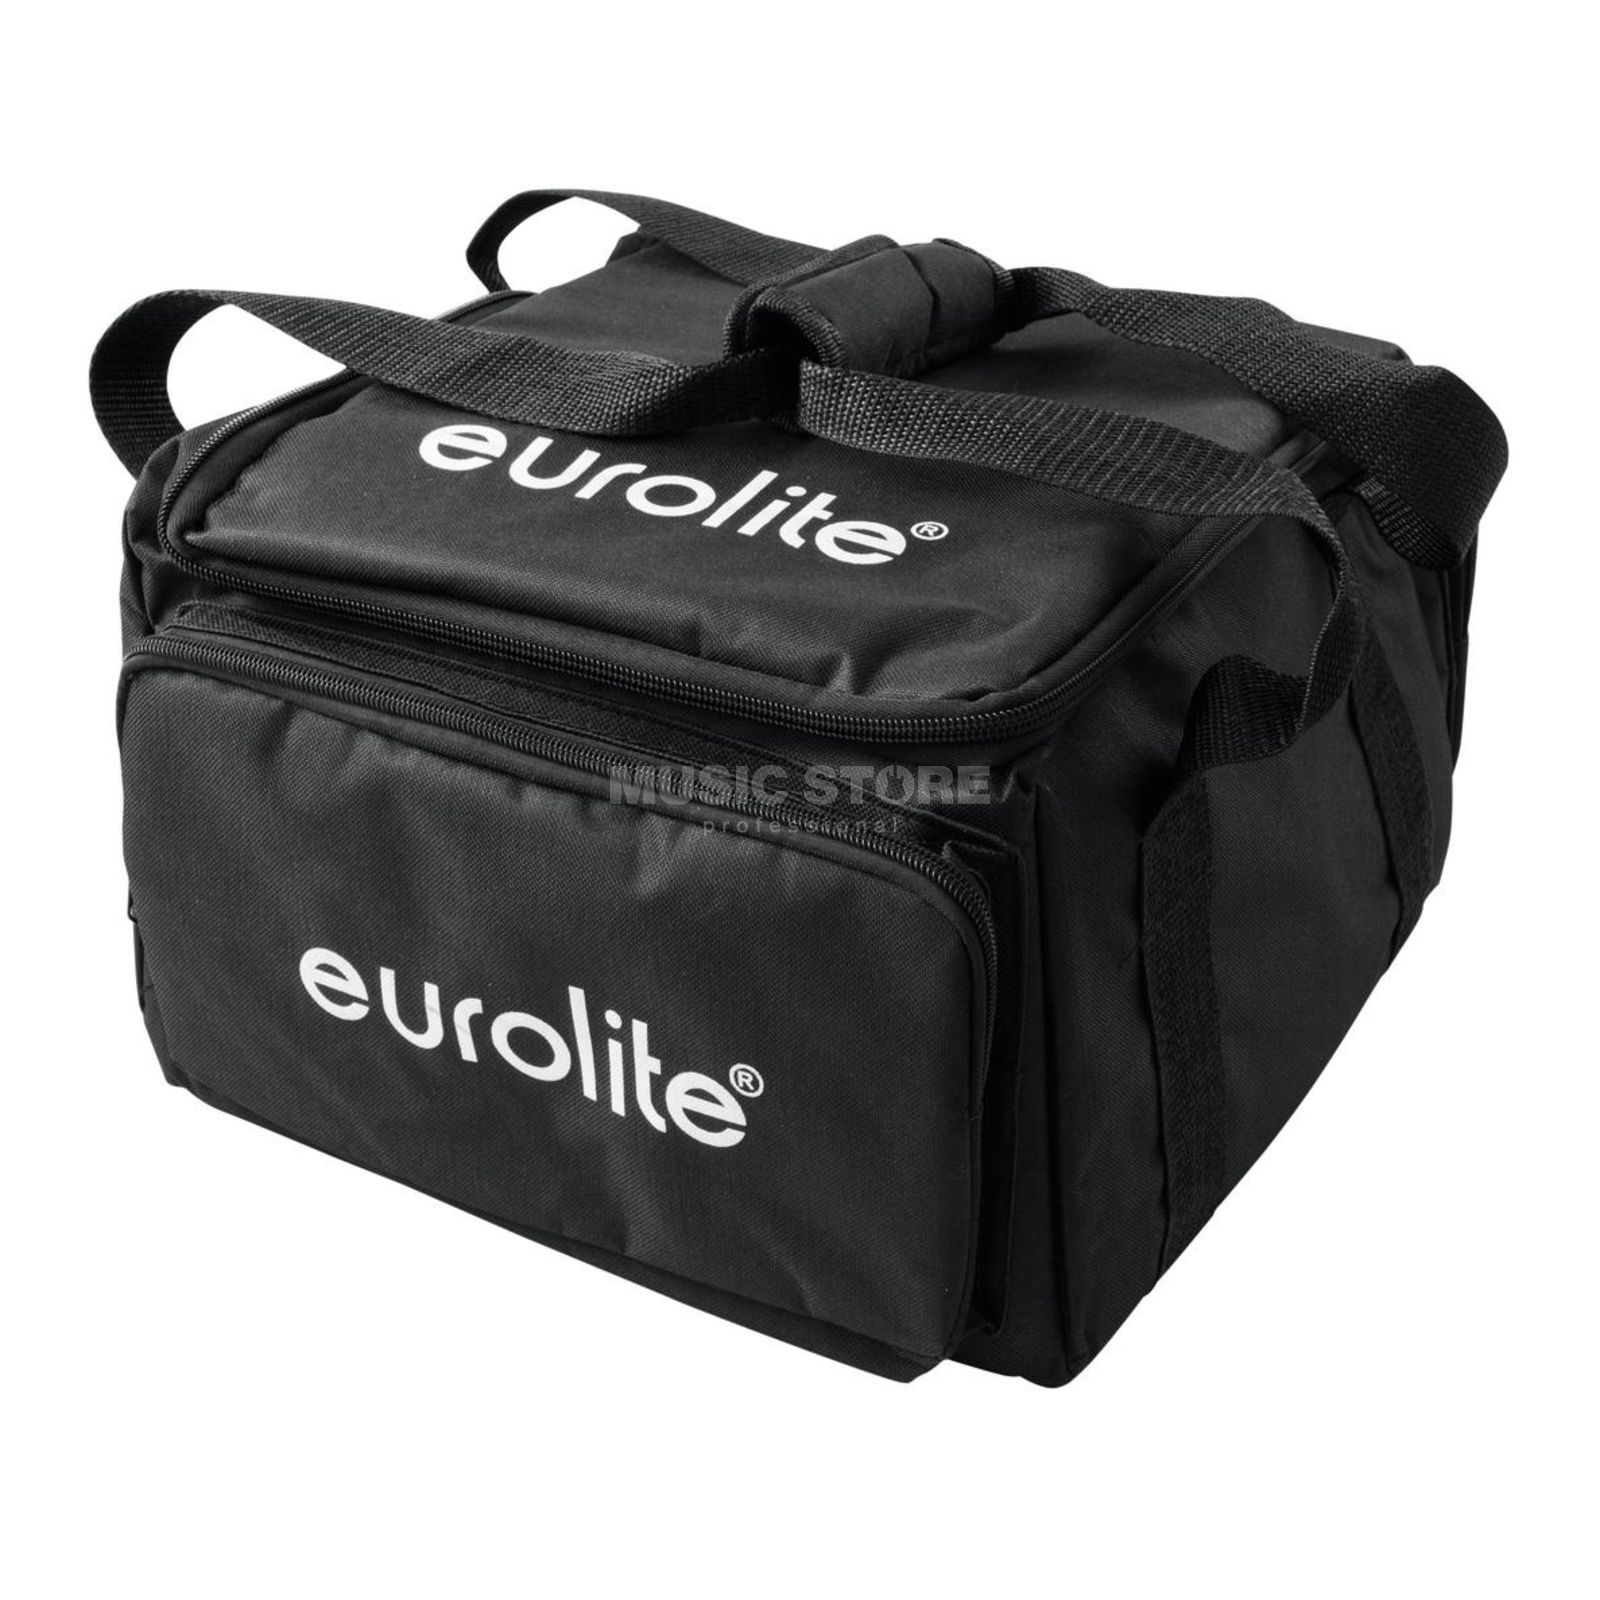 Eurolite SB-4 Soft-Bag black Product Image